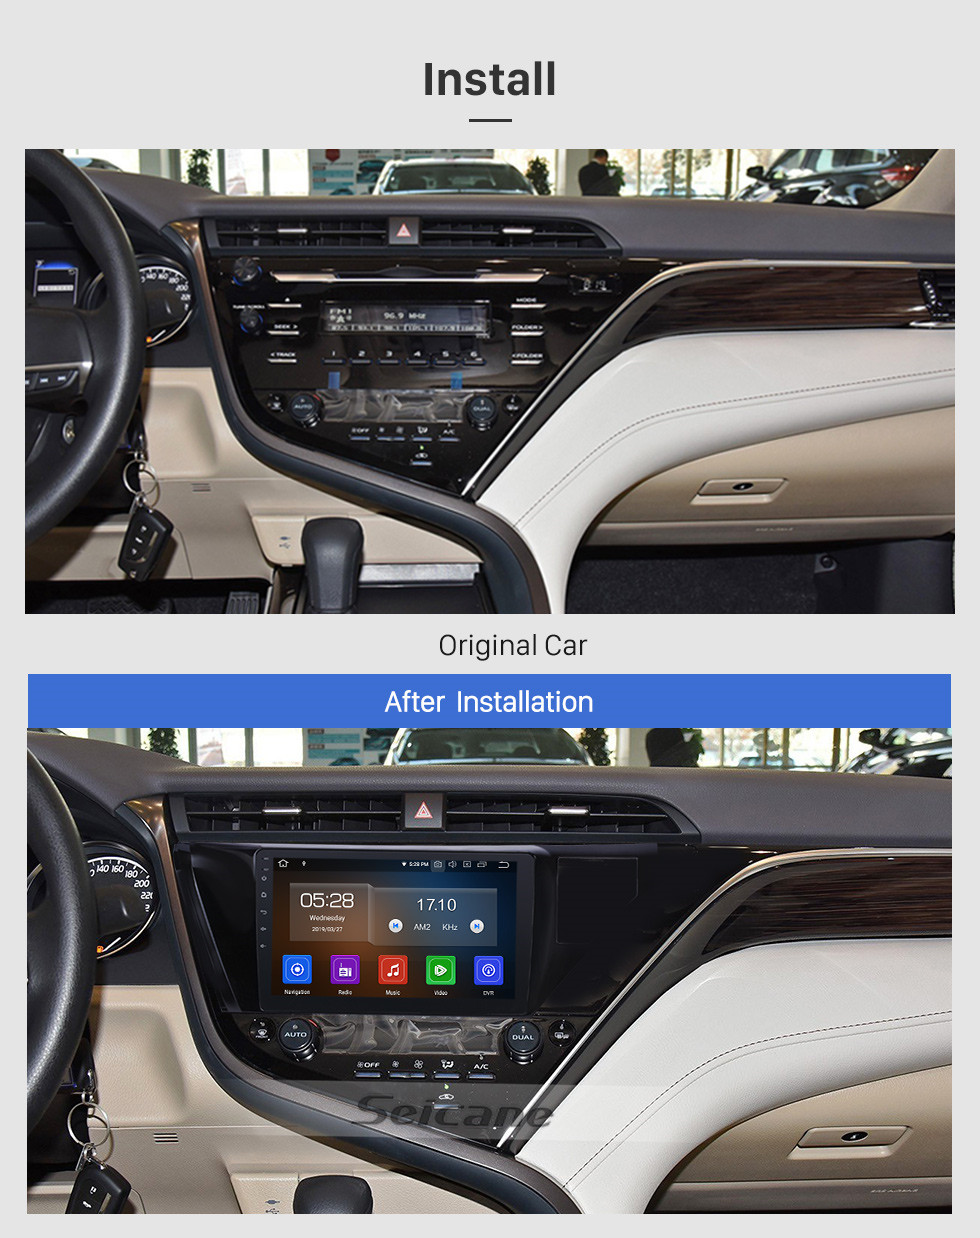 Seicane 10,1 pouces Android 9.0 Radio pour 2018-2019 Toyota Camry LHD Bluetooth Wifi HD Touchscreen Navigation GPS Carplay support USB DVR Digital TV TPMS